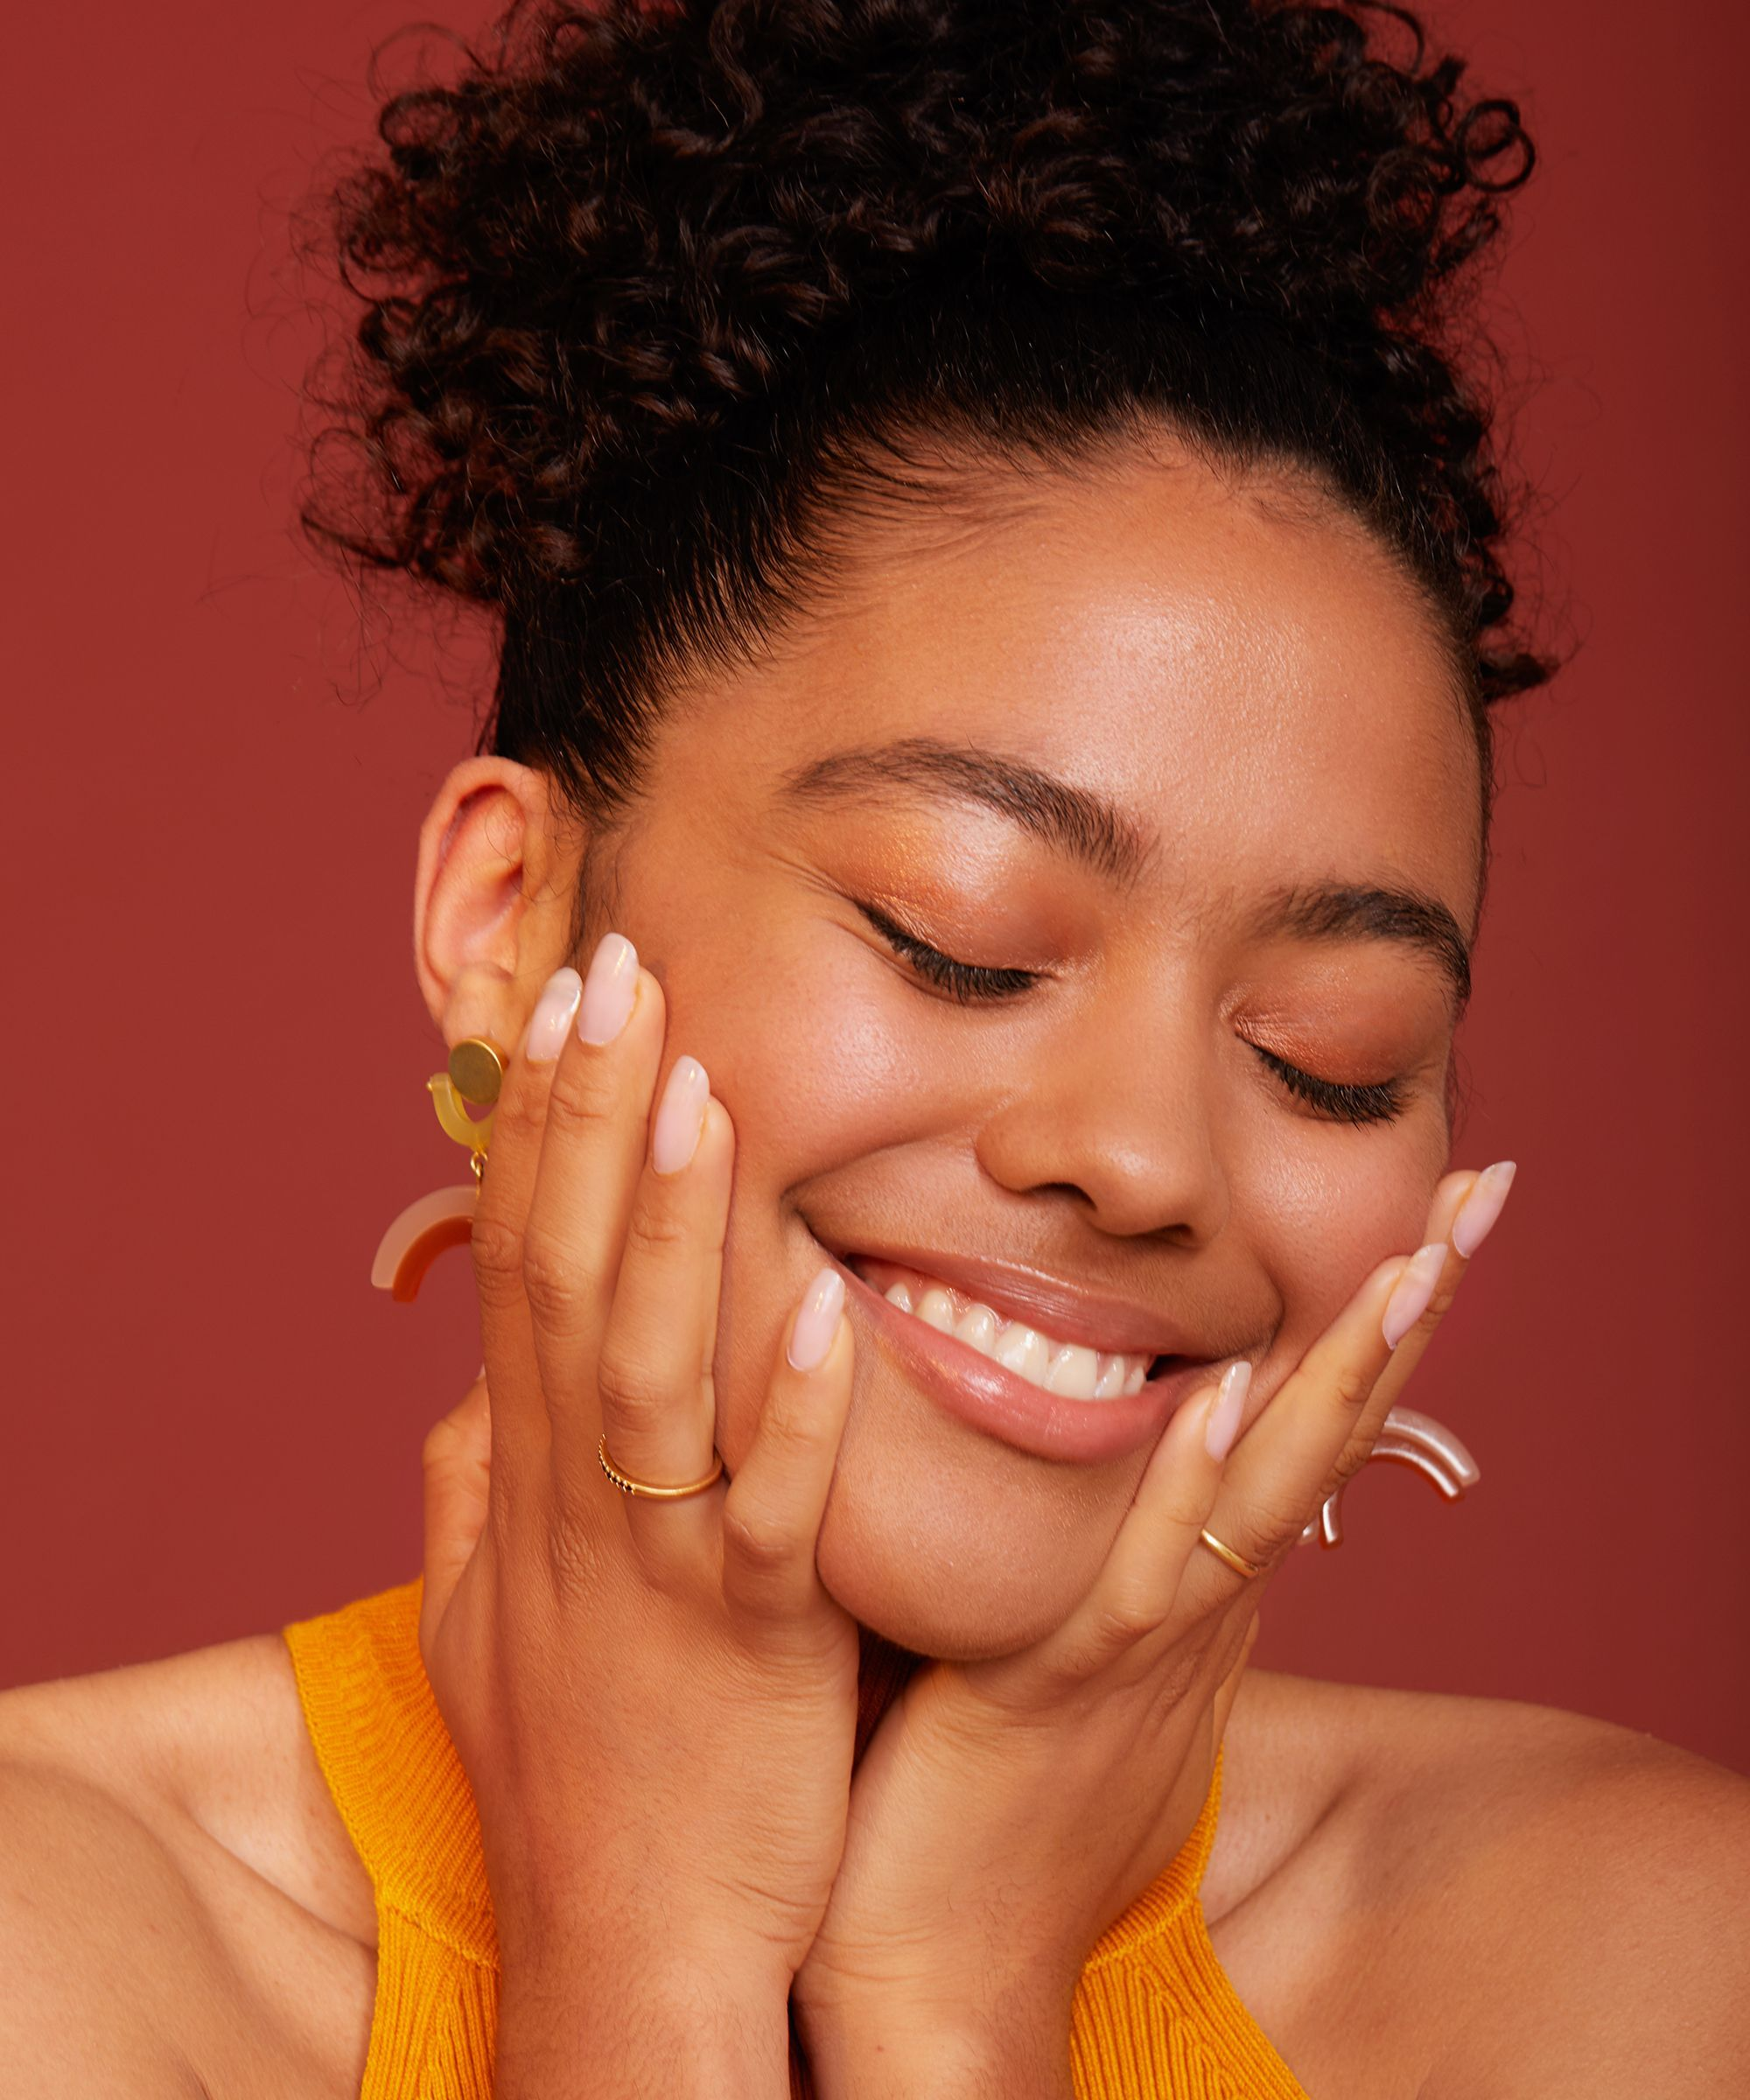 How long does it take for collagen supplements to work on skin